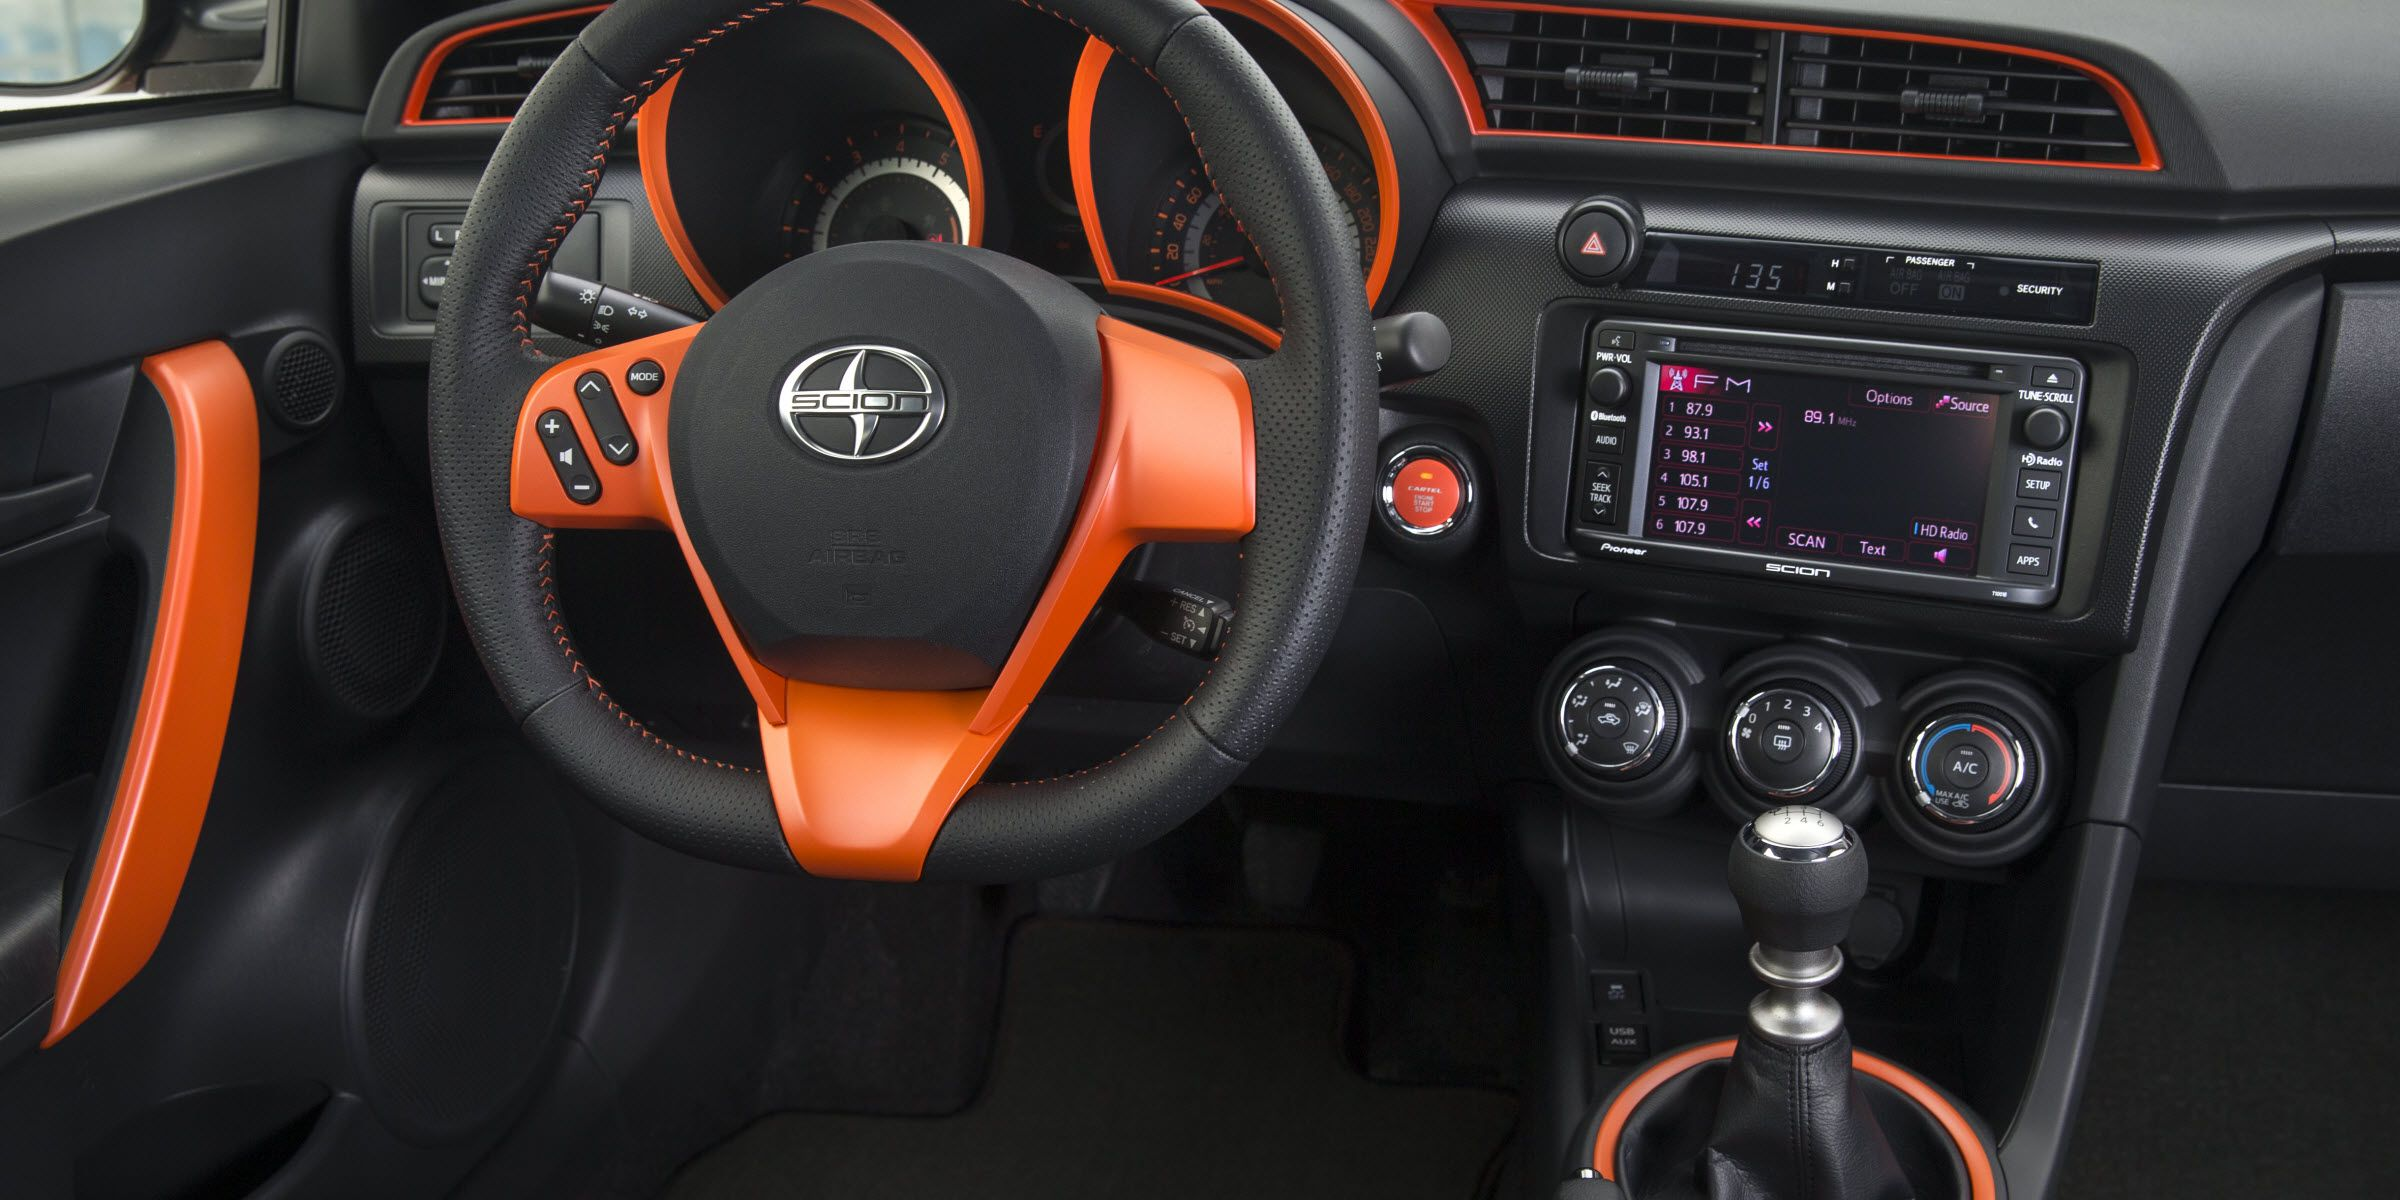 2015 Scion Tc Release Series 9 0 To Be Offered In Very Limited Numbers Scion Tc Scion New Cars